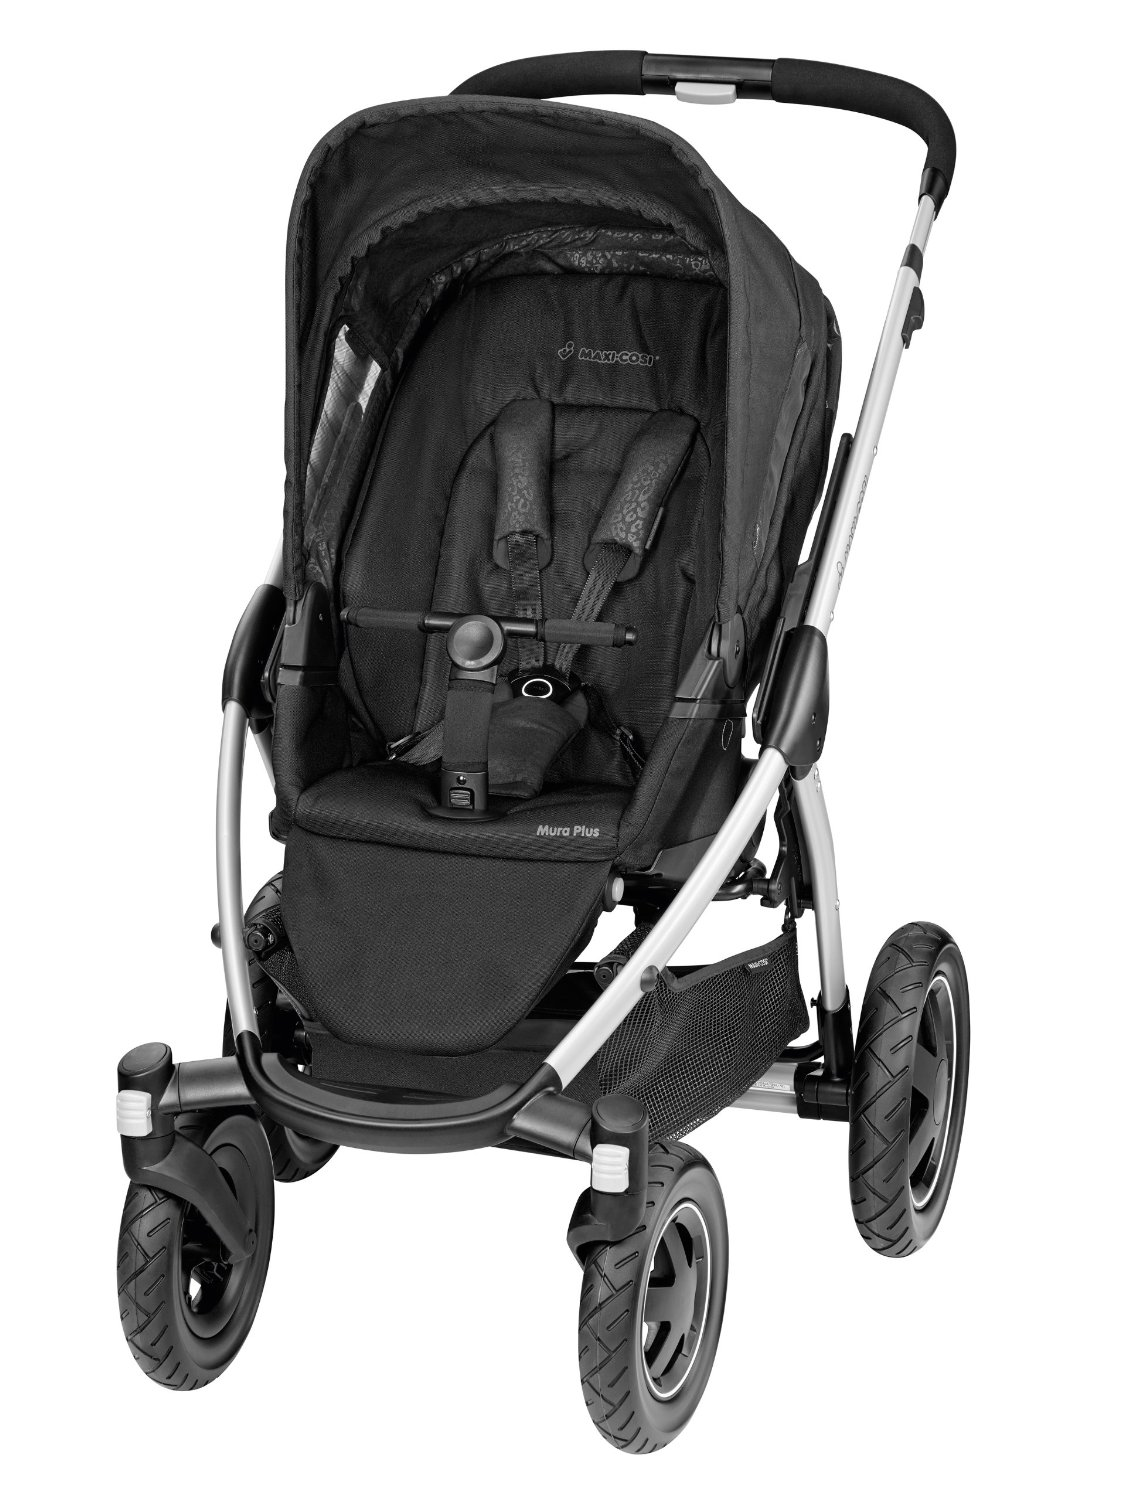 maxi cosi mura plus 4 wheel pushchair modern black baby. Black Bedroom Furniture Sets. Home Design Ideas